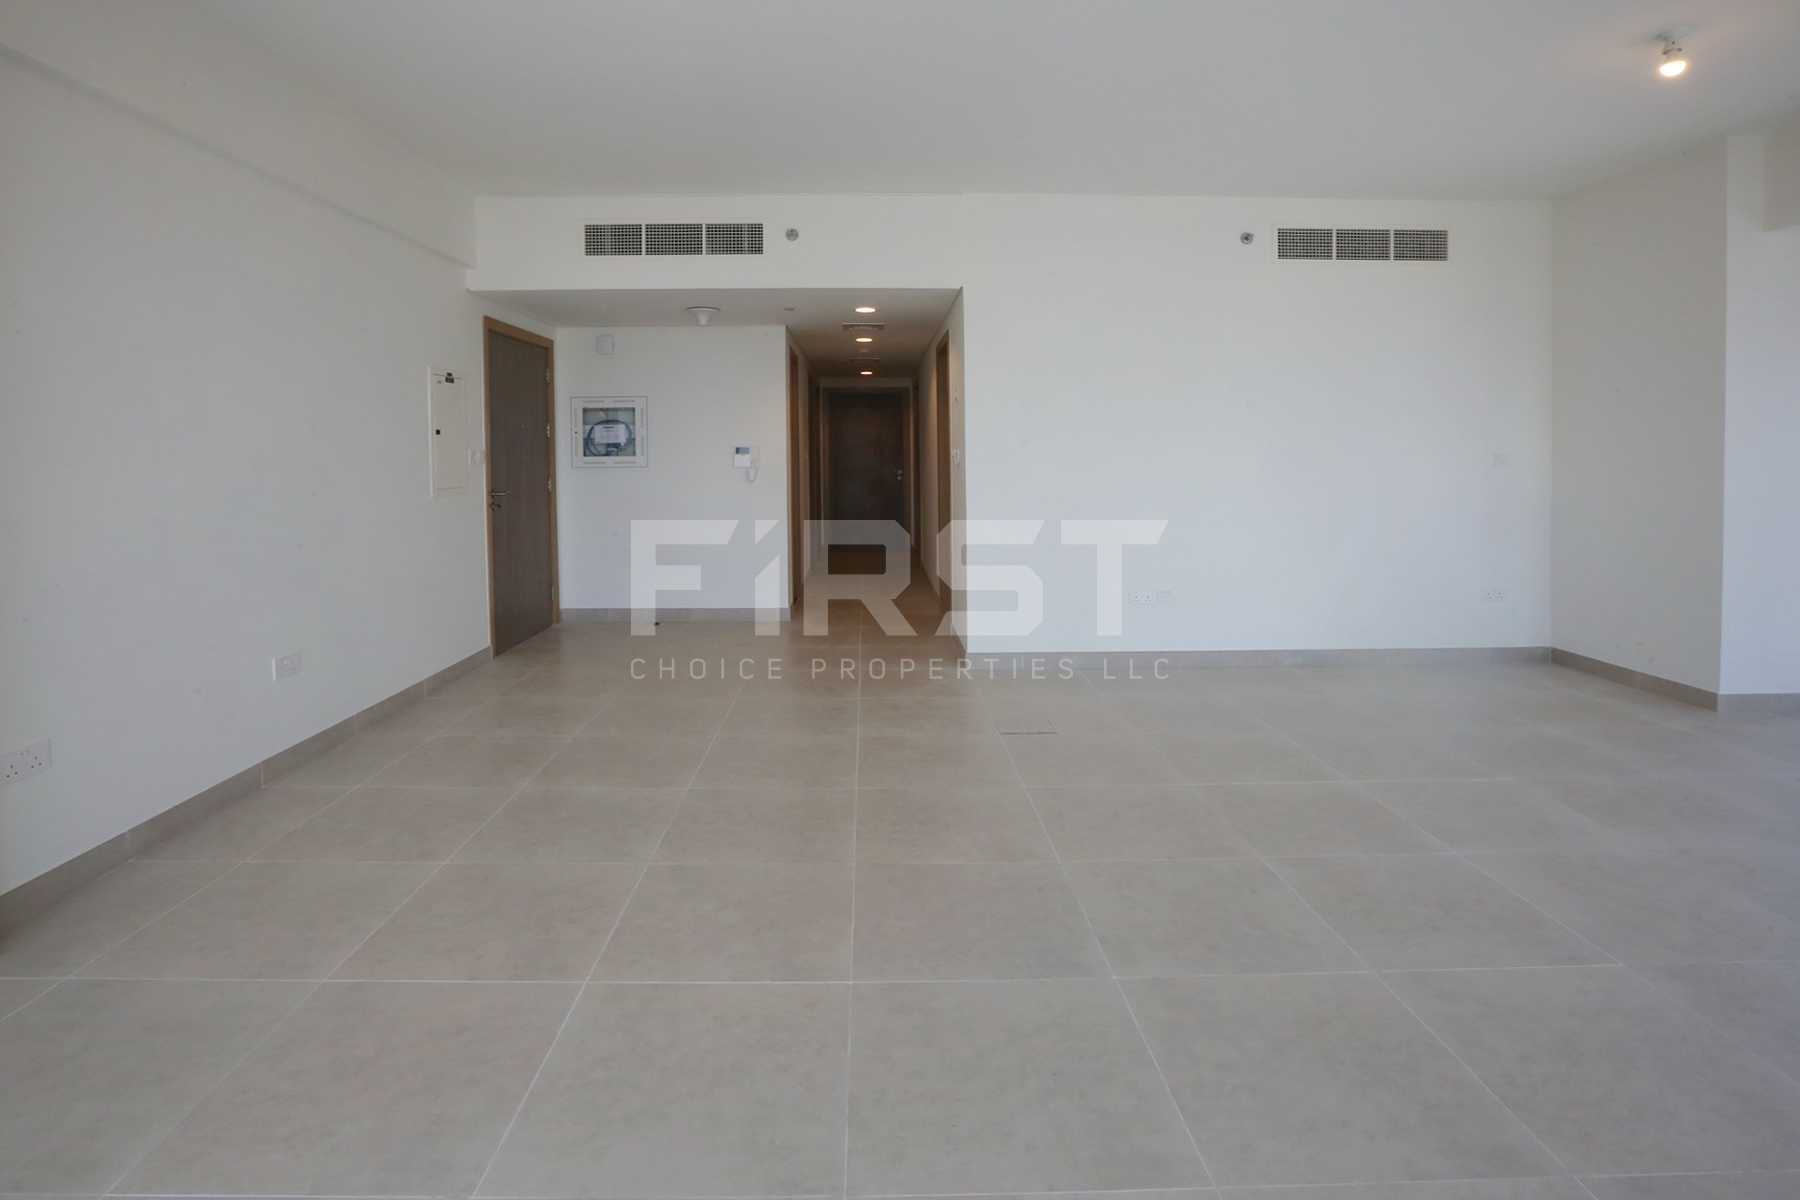 Internal Photo of 2 Bedroom Apartment in Soho Square Residences in Saadiyat Island Abu Dhabi UAE (25).jpg